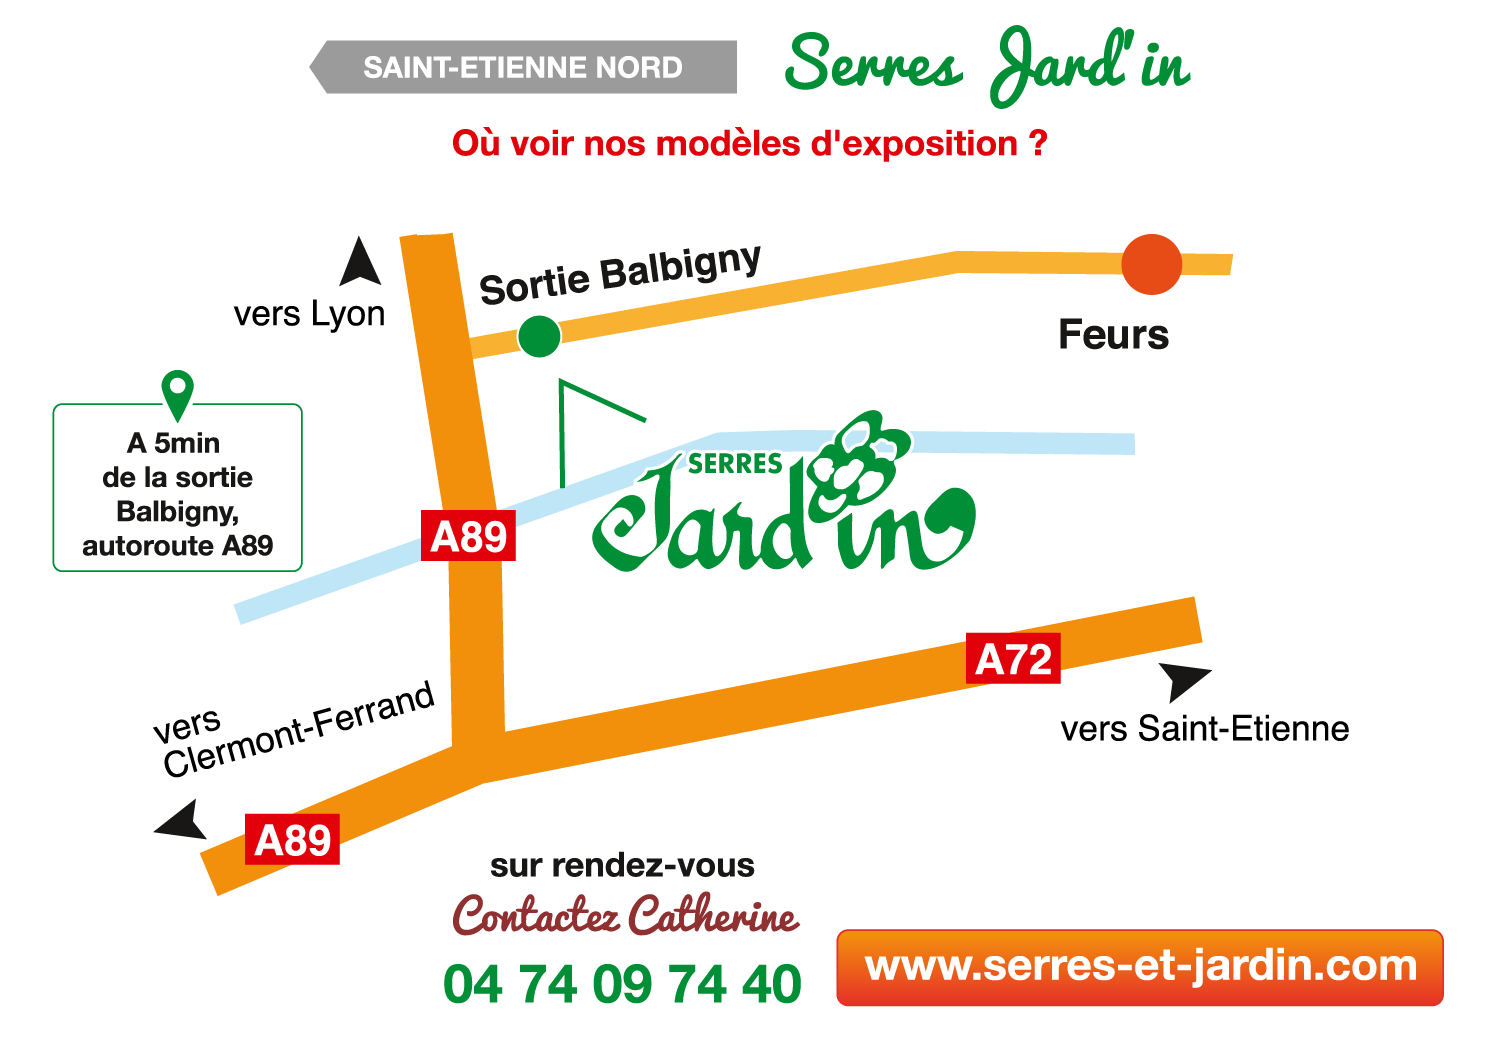 Showroom Serres Jard'in